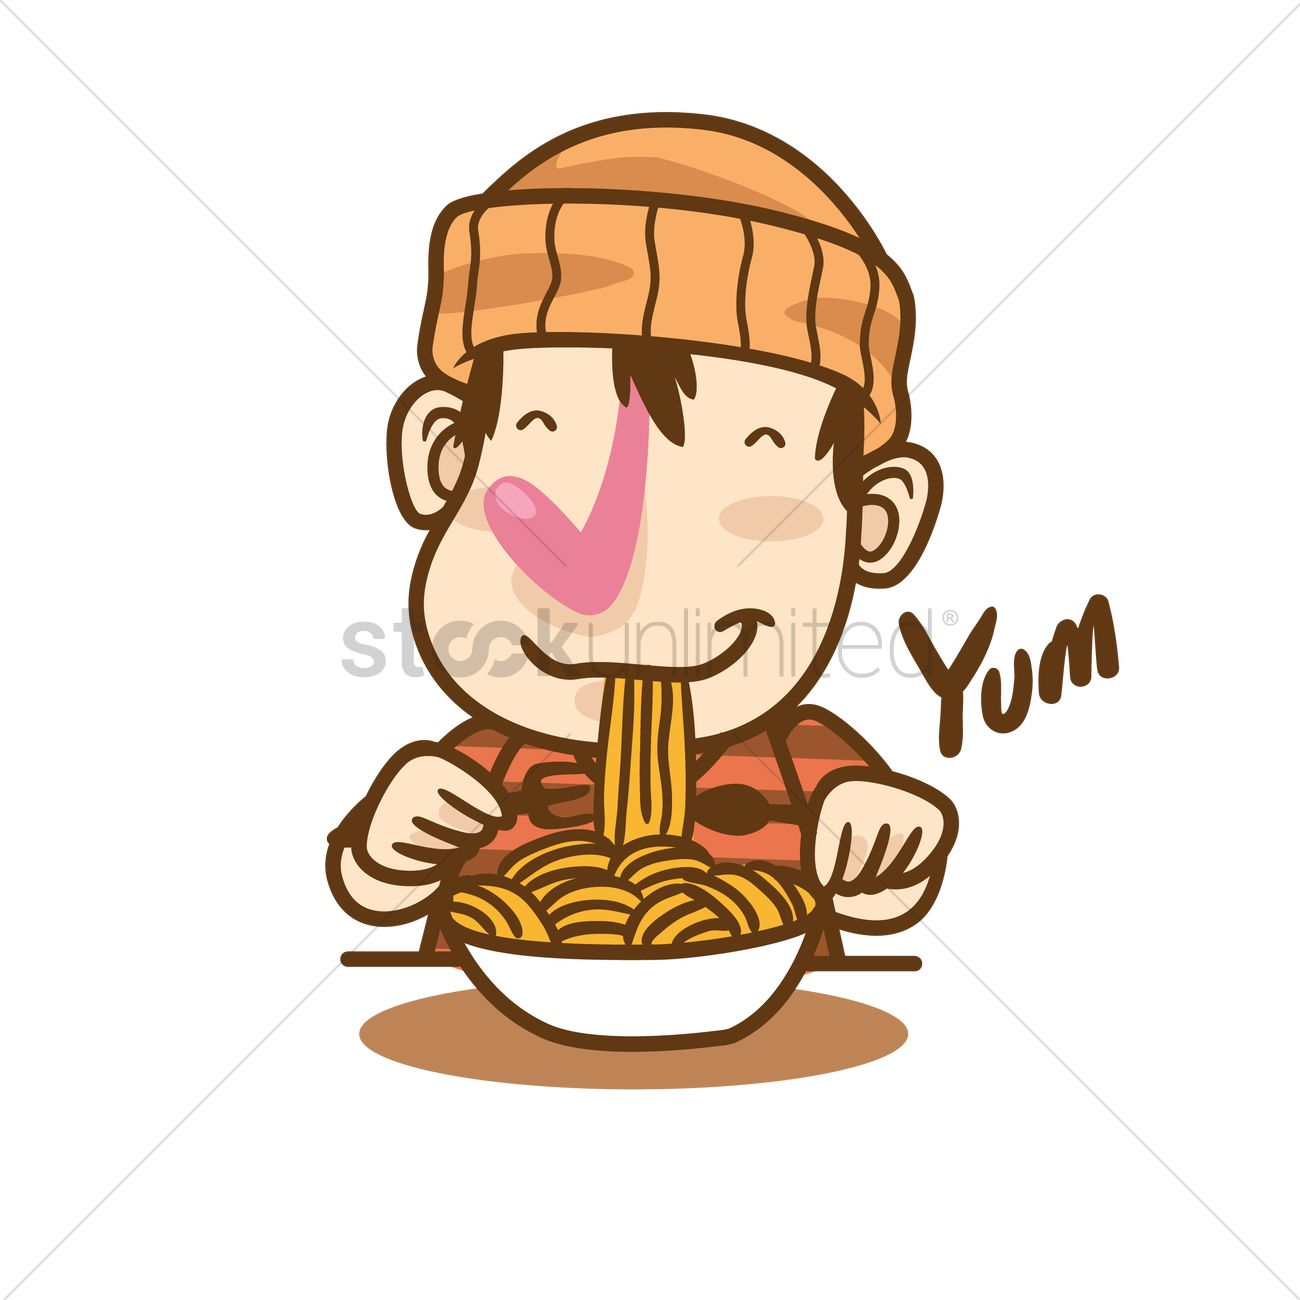 Cartoon Character Eating Noodles Vector Image 1935102 Stockunlimited